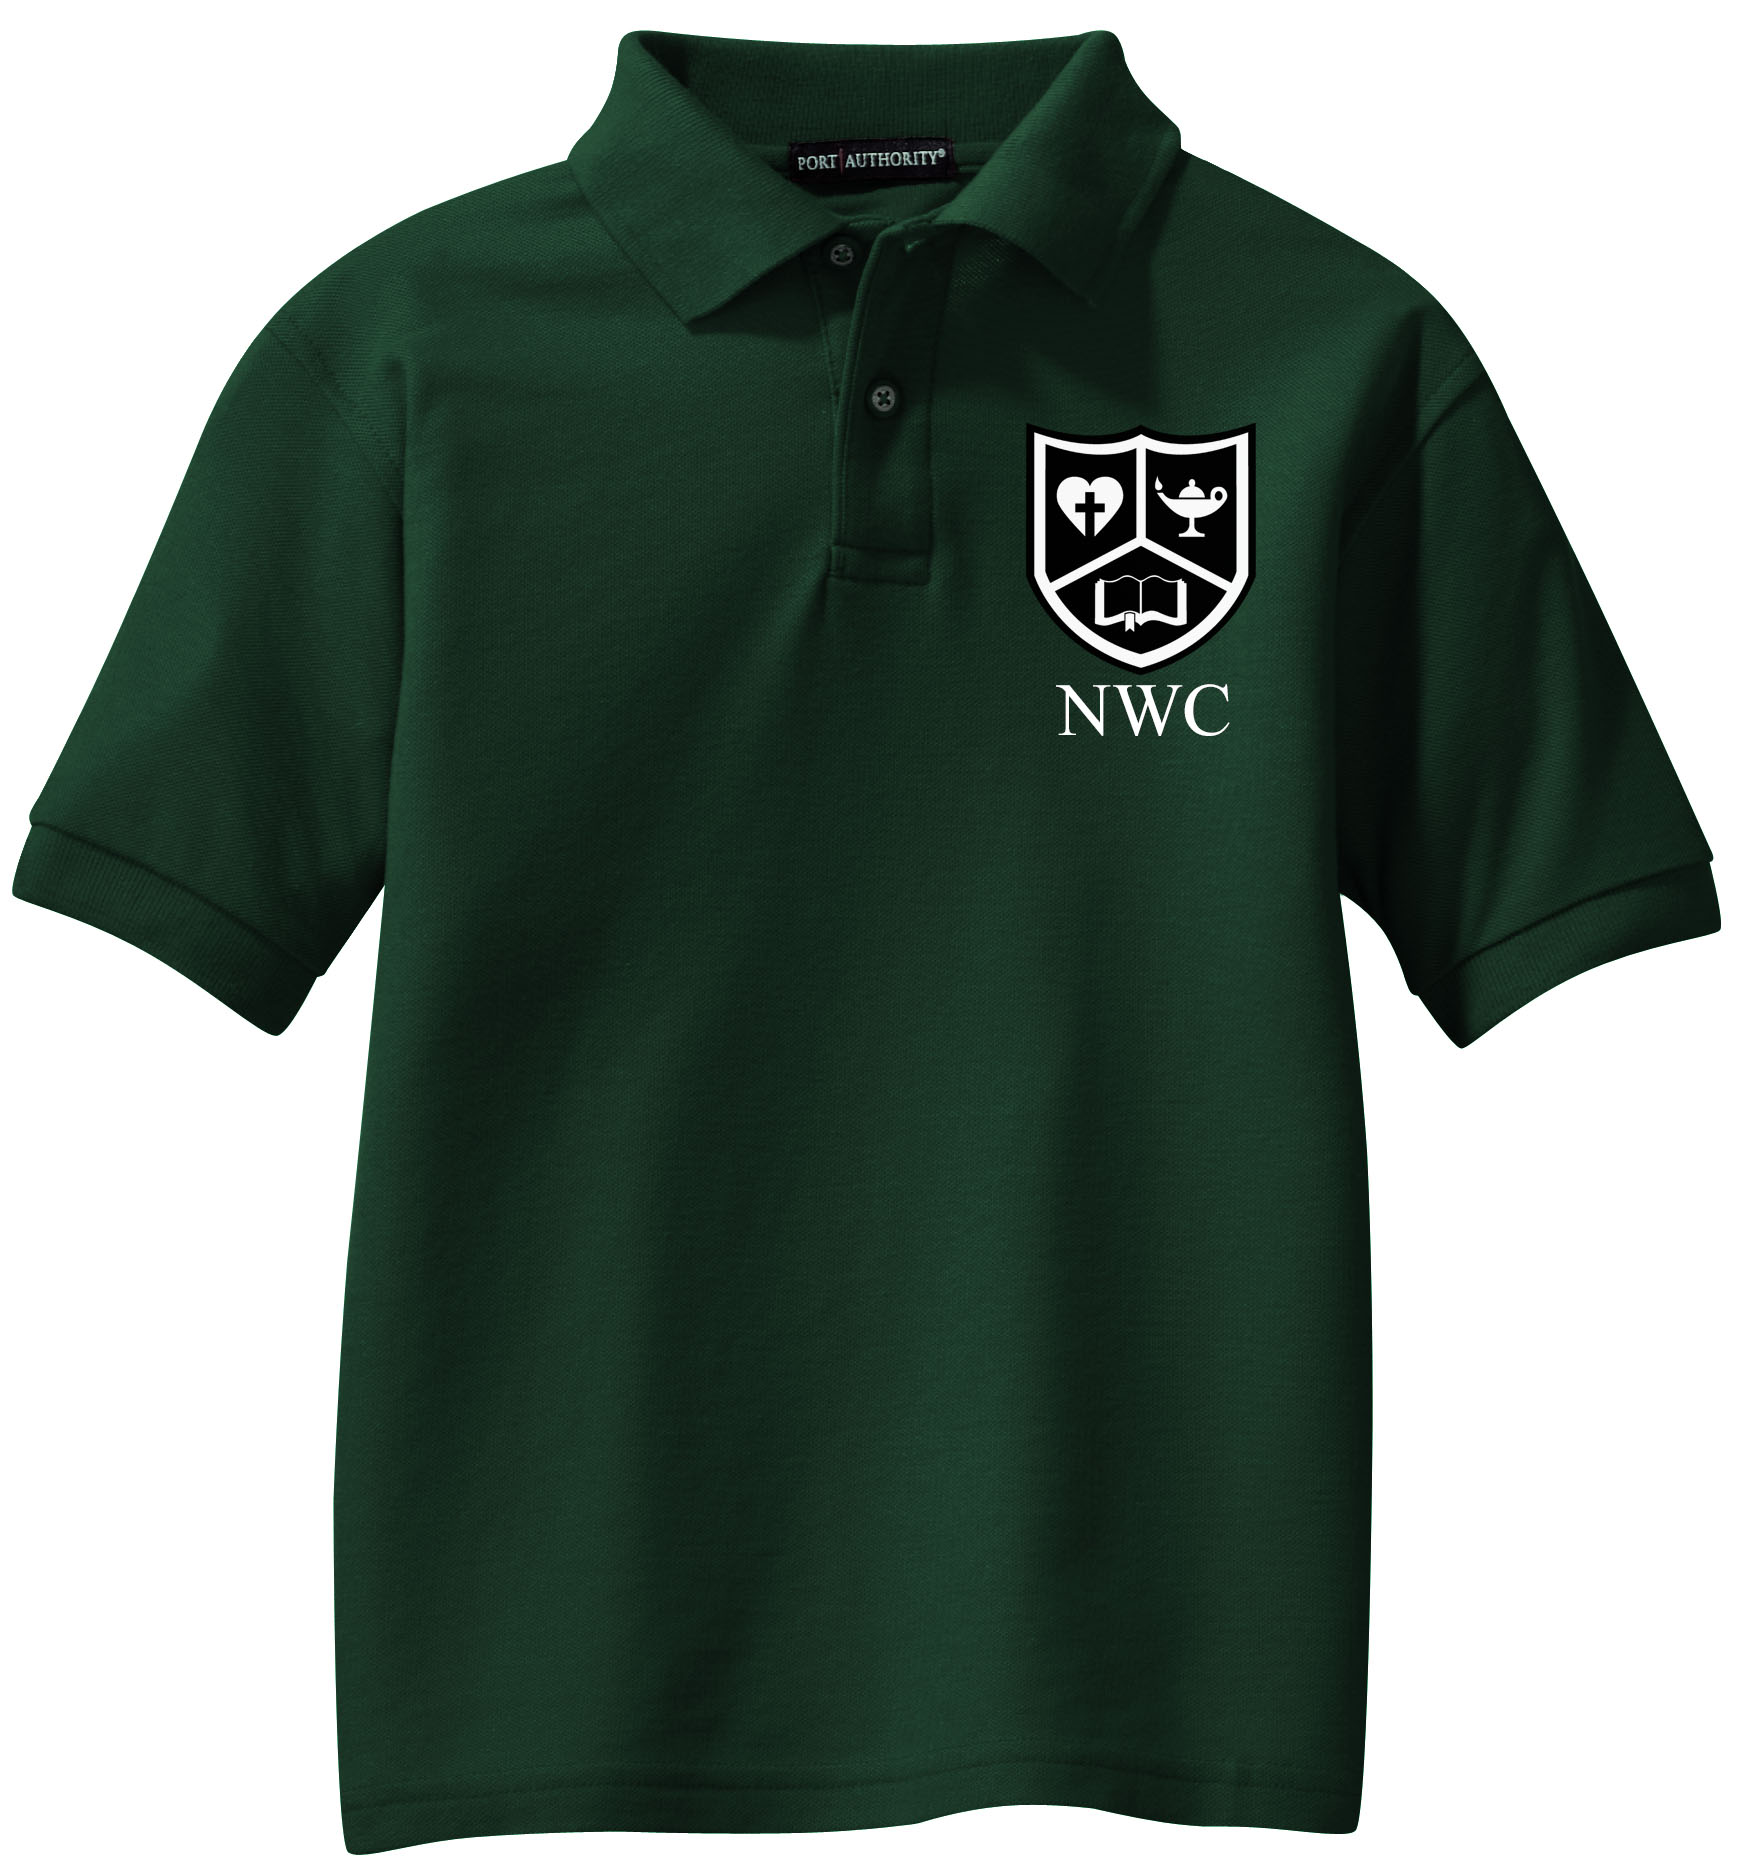 Color Day Shirt - Short Sleeve